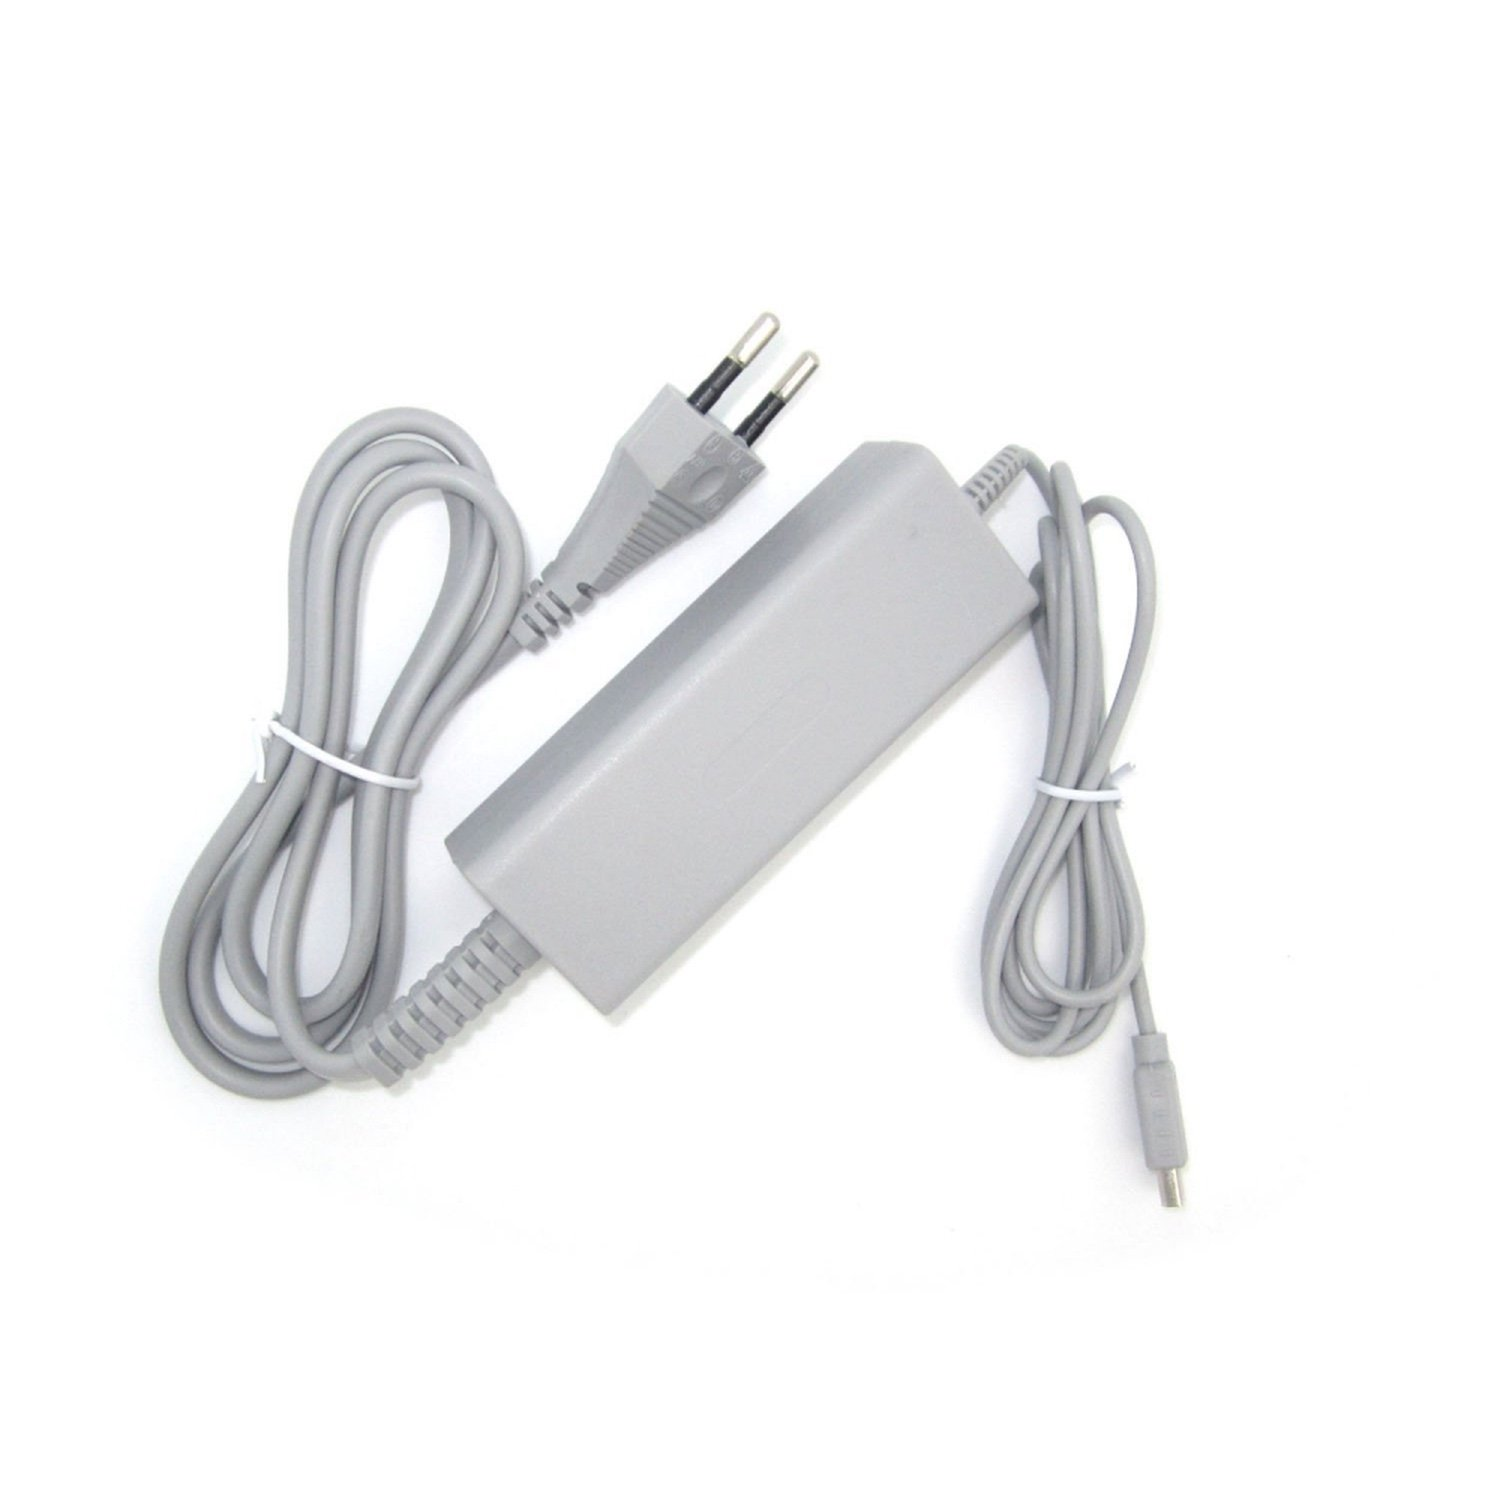 Power Supply Universal 220V AC Adapter for Wii U GAMEPAD Euro Plug 3 prong eu us au uk plug 1 2m notebook laptop power cable power supply adapter cable cord for charger adapter cable